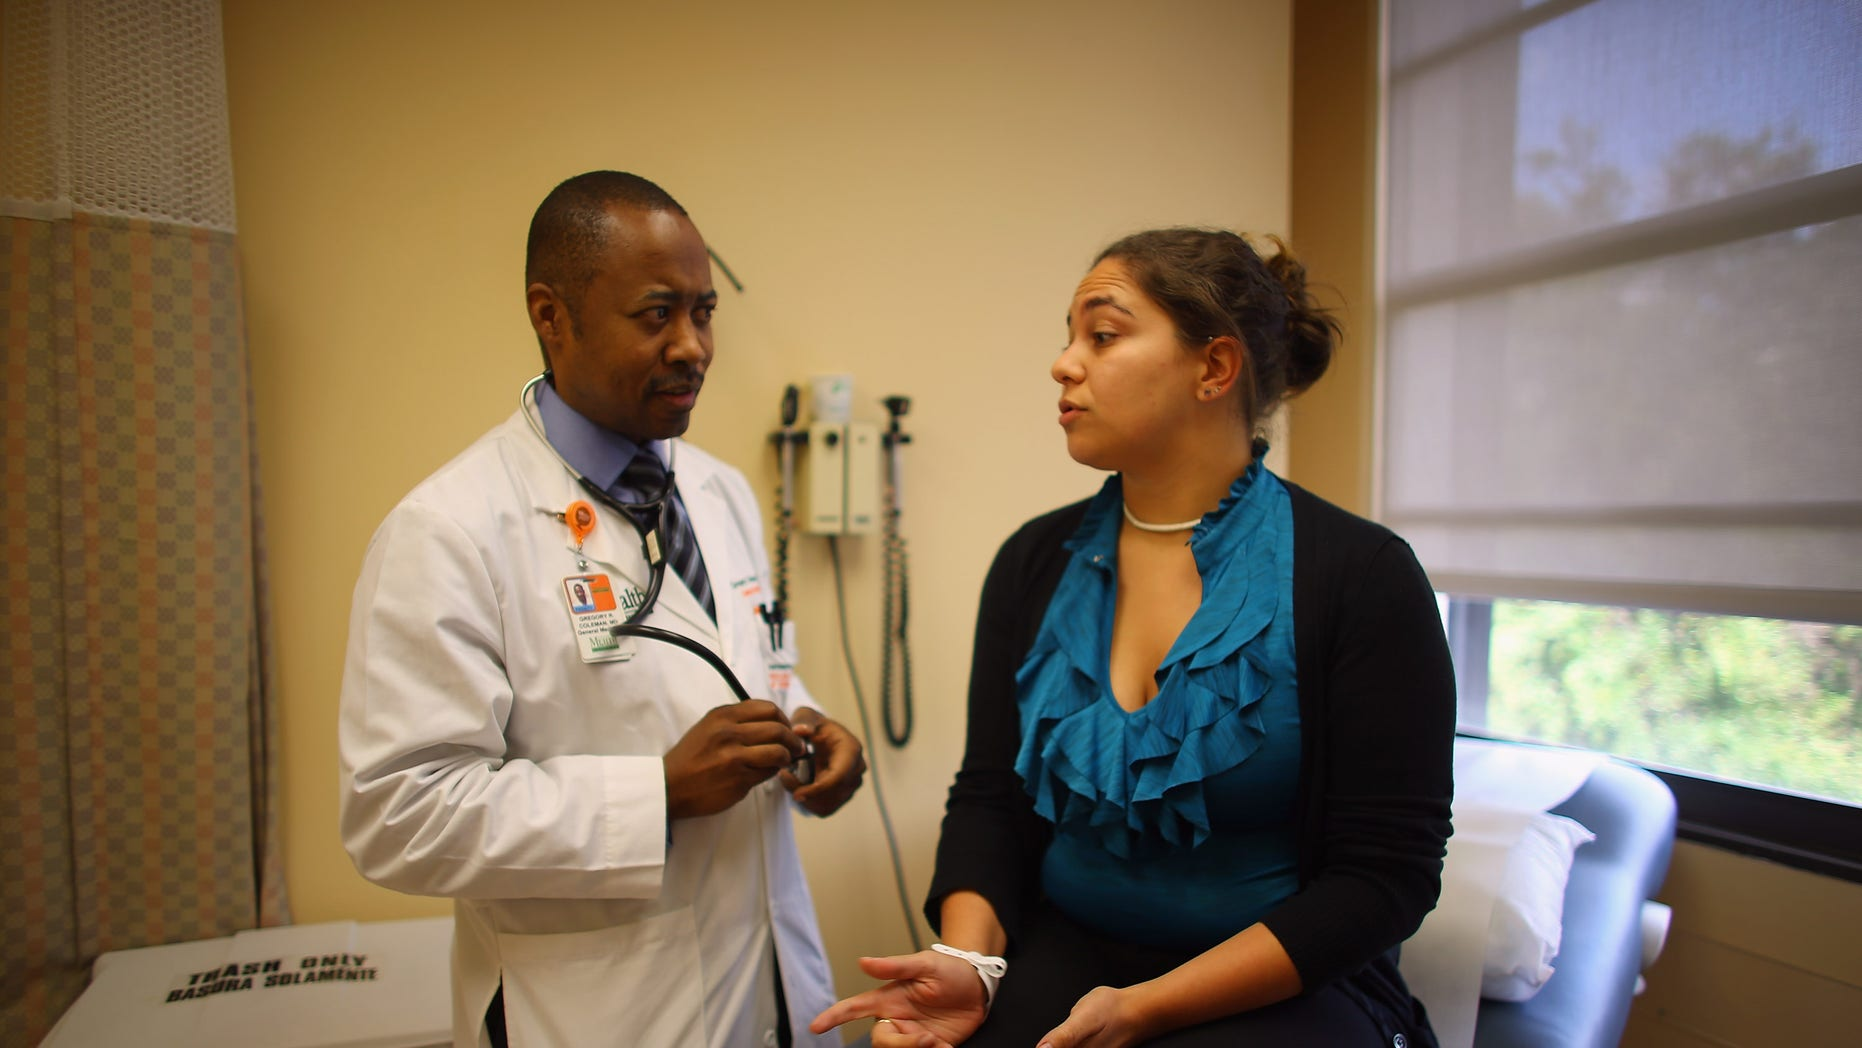 MIAMI, FL - JUNE 28:  Dr. Gregory Coleman, Assistant Professor of Medicine, University of Miami, Miller School of Medicine, speaks with Vanessa Moreno, 25 years old, as she visits him for a check-up on the same day that the United States Supreme Court upheld the Affordable Care Act on June 28, 2012 in Miami, Florida. Dr. Coleman said, ?the ruling is a good start to begin to control the economics of medicine?.  (Photo by Joe Raedle/Getty Images)